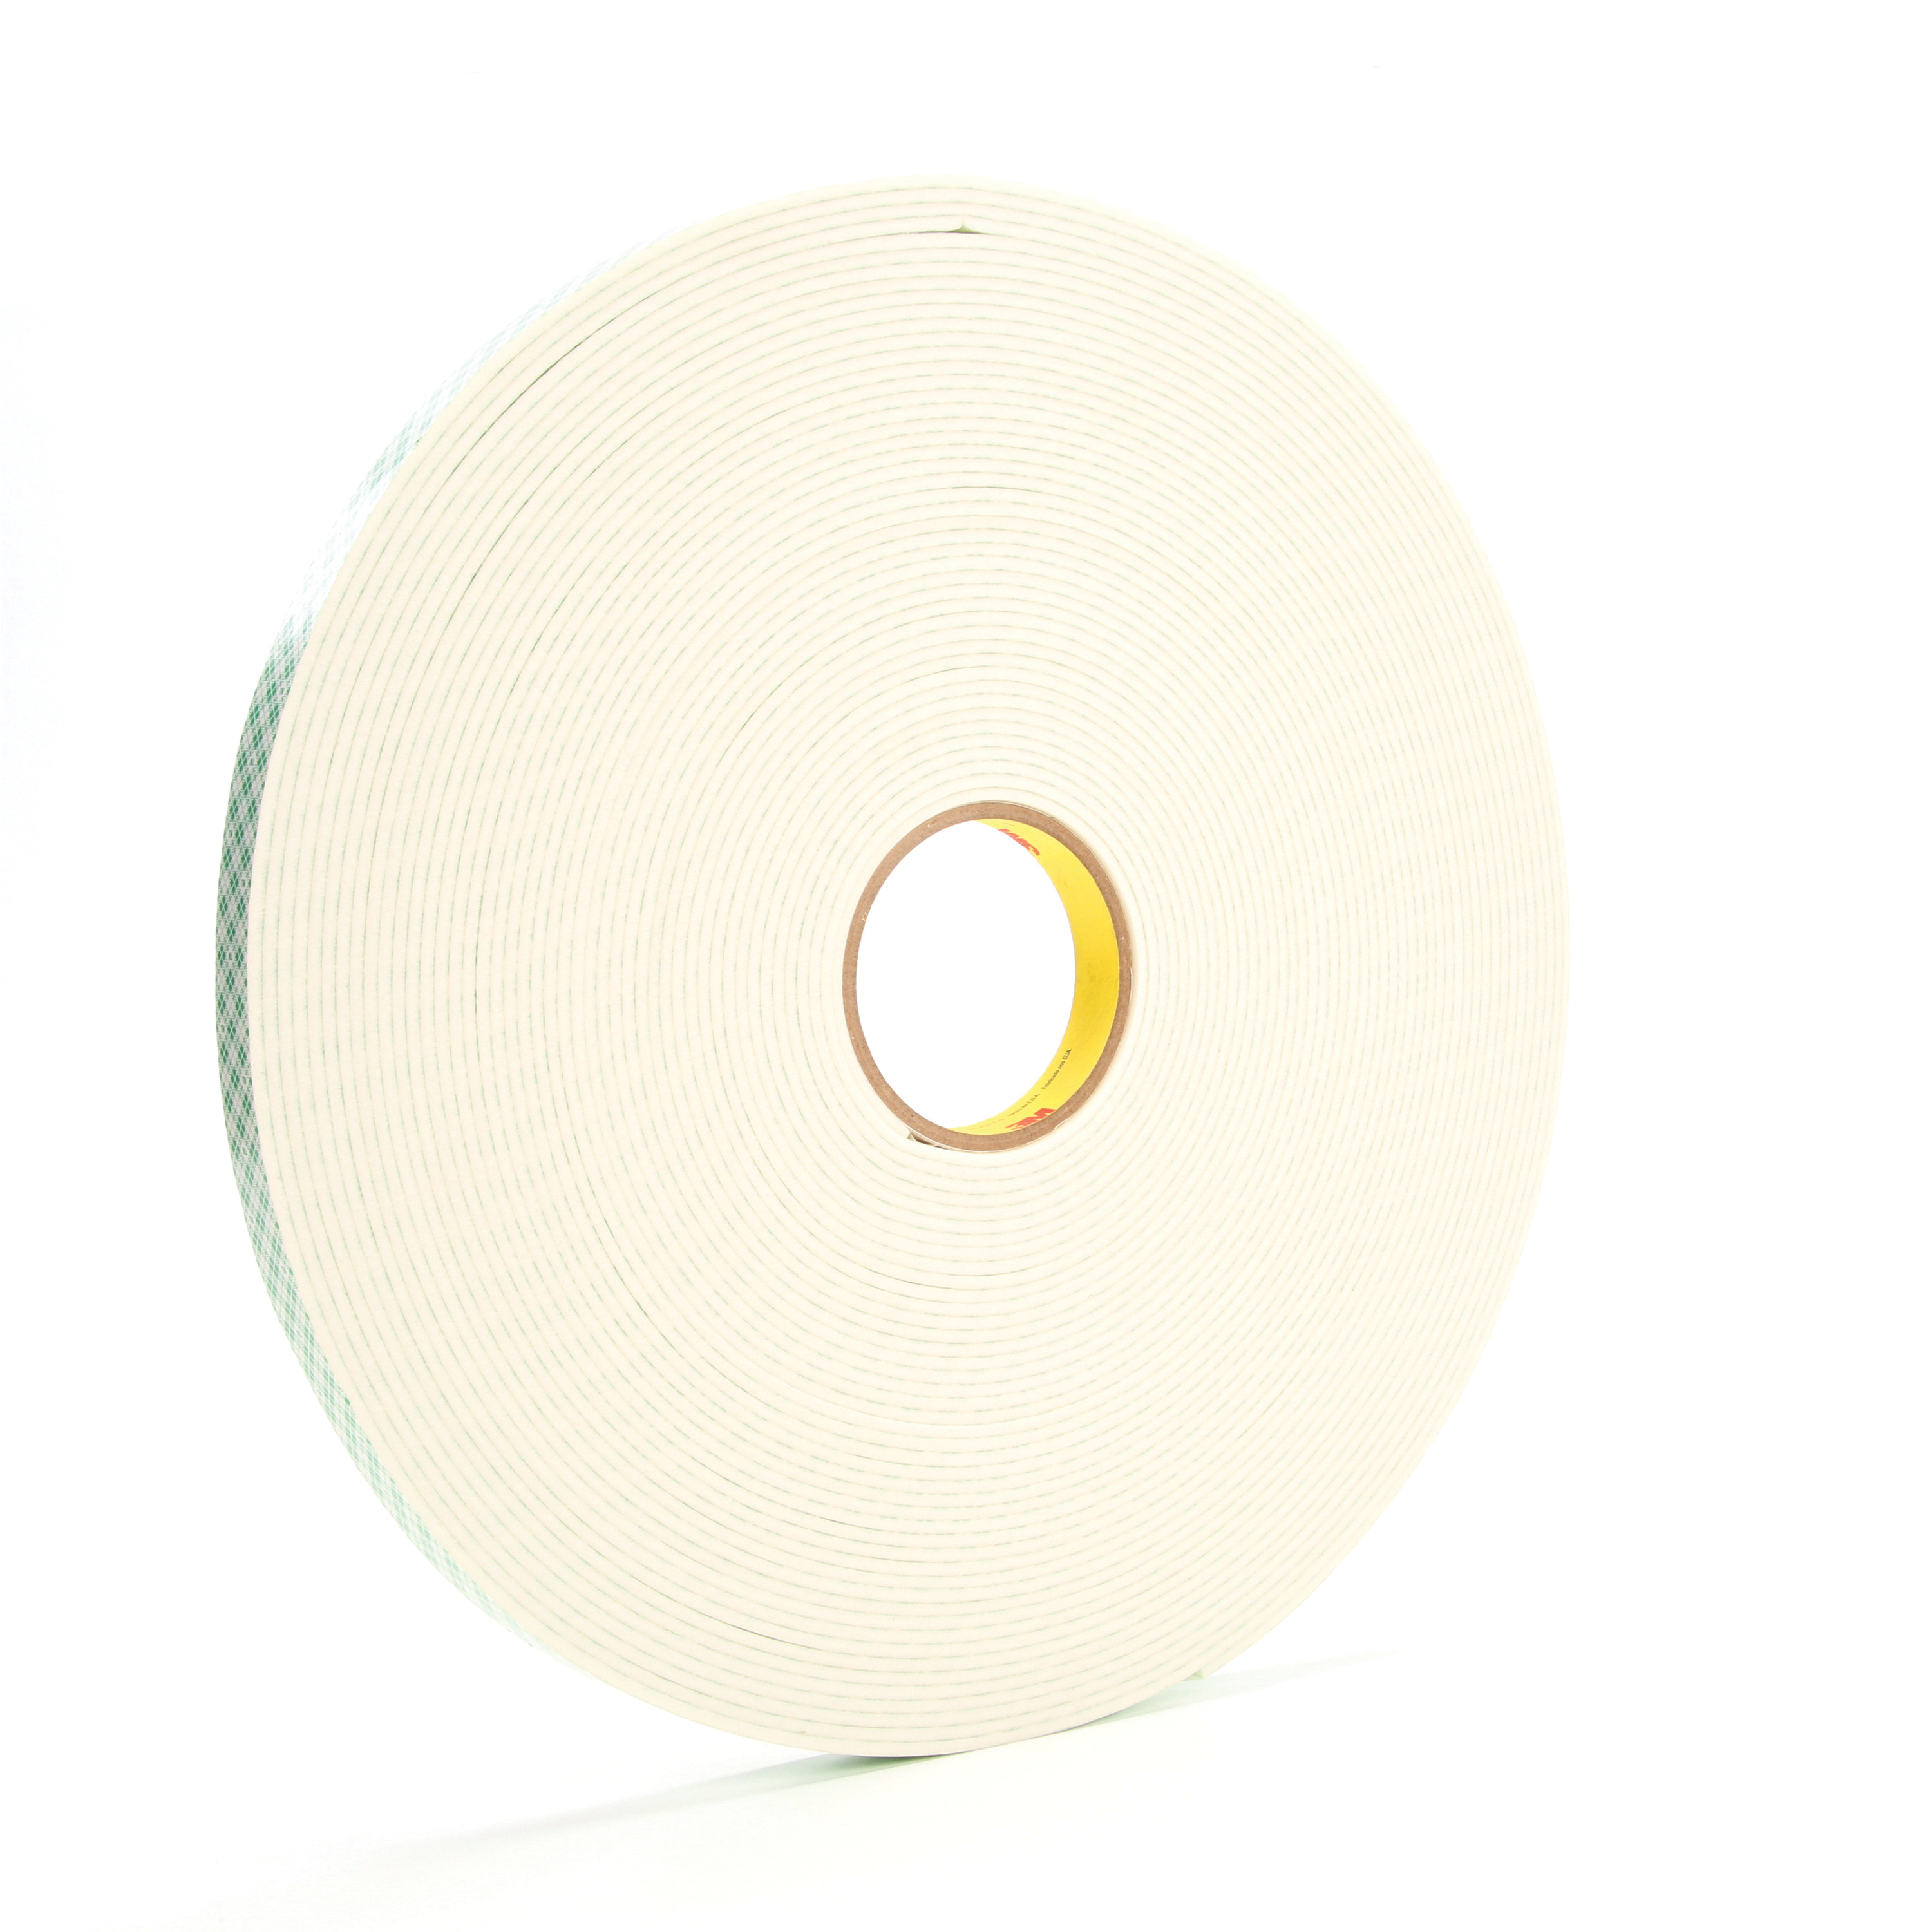 3M™ 021200-06451 Double Coated Tape, 36 yd L x 3/4 in W, 125 mil THK, Acrylic Adhesive, Urethane Foam Backing, Off-White